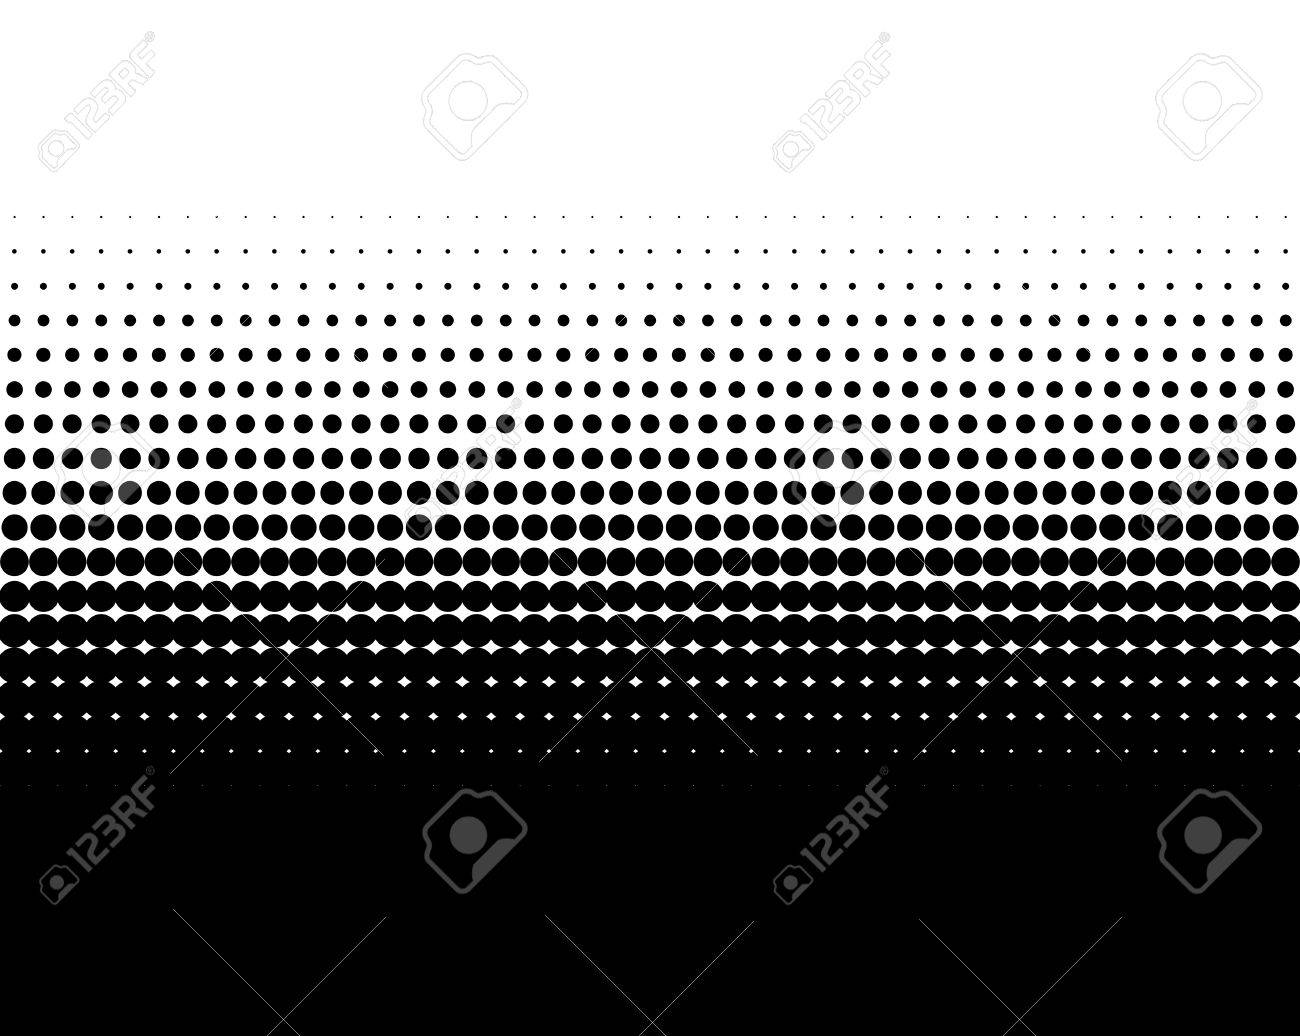 Background image transition - Transition Of Black Dots On White Background Stock Photo 47221453